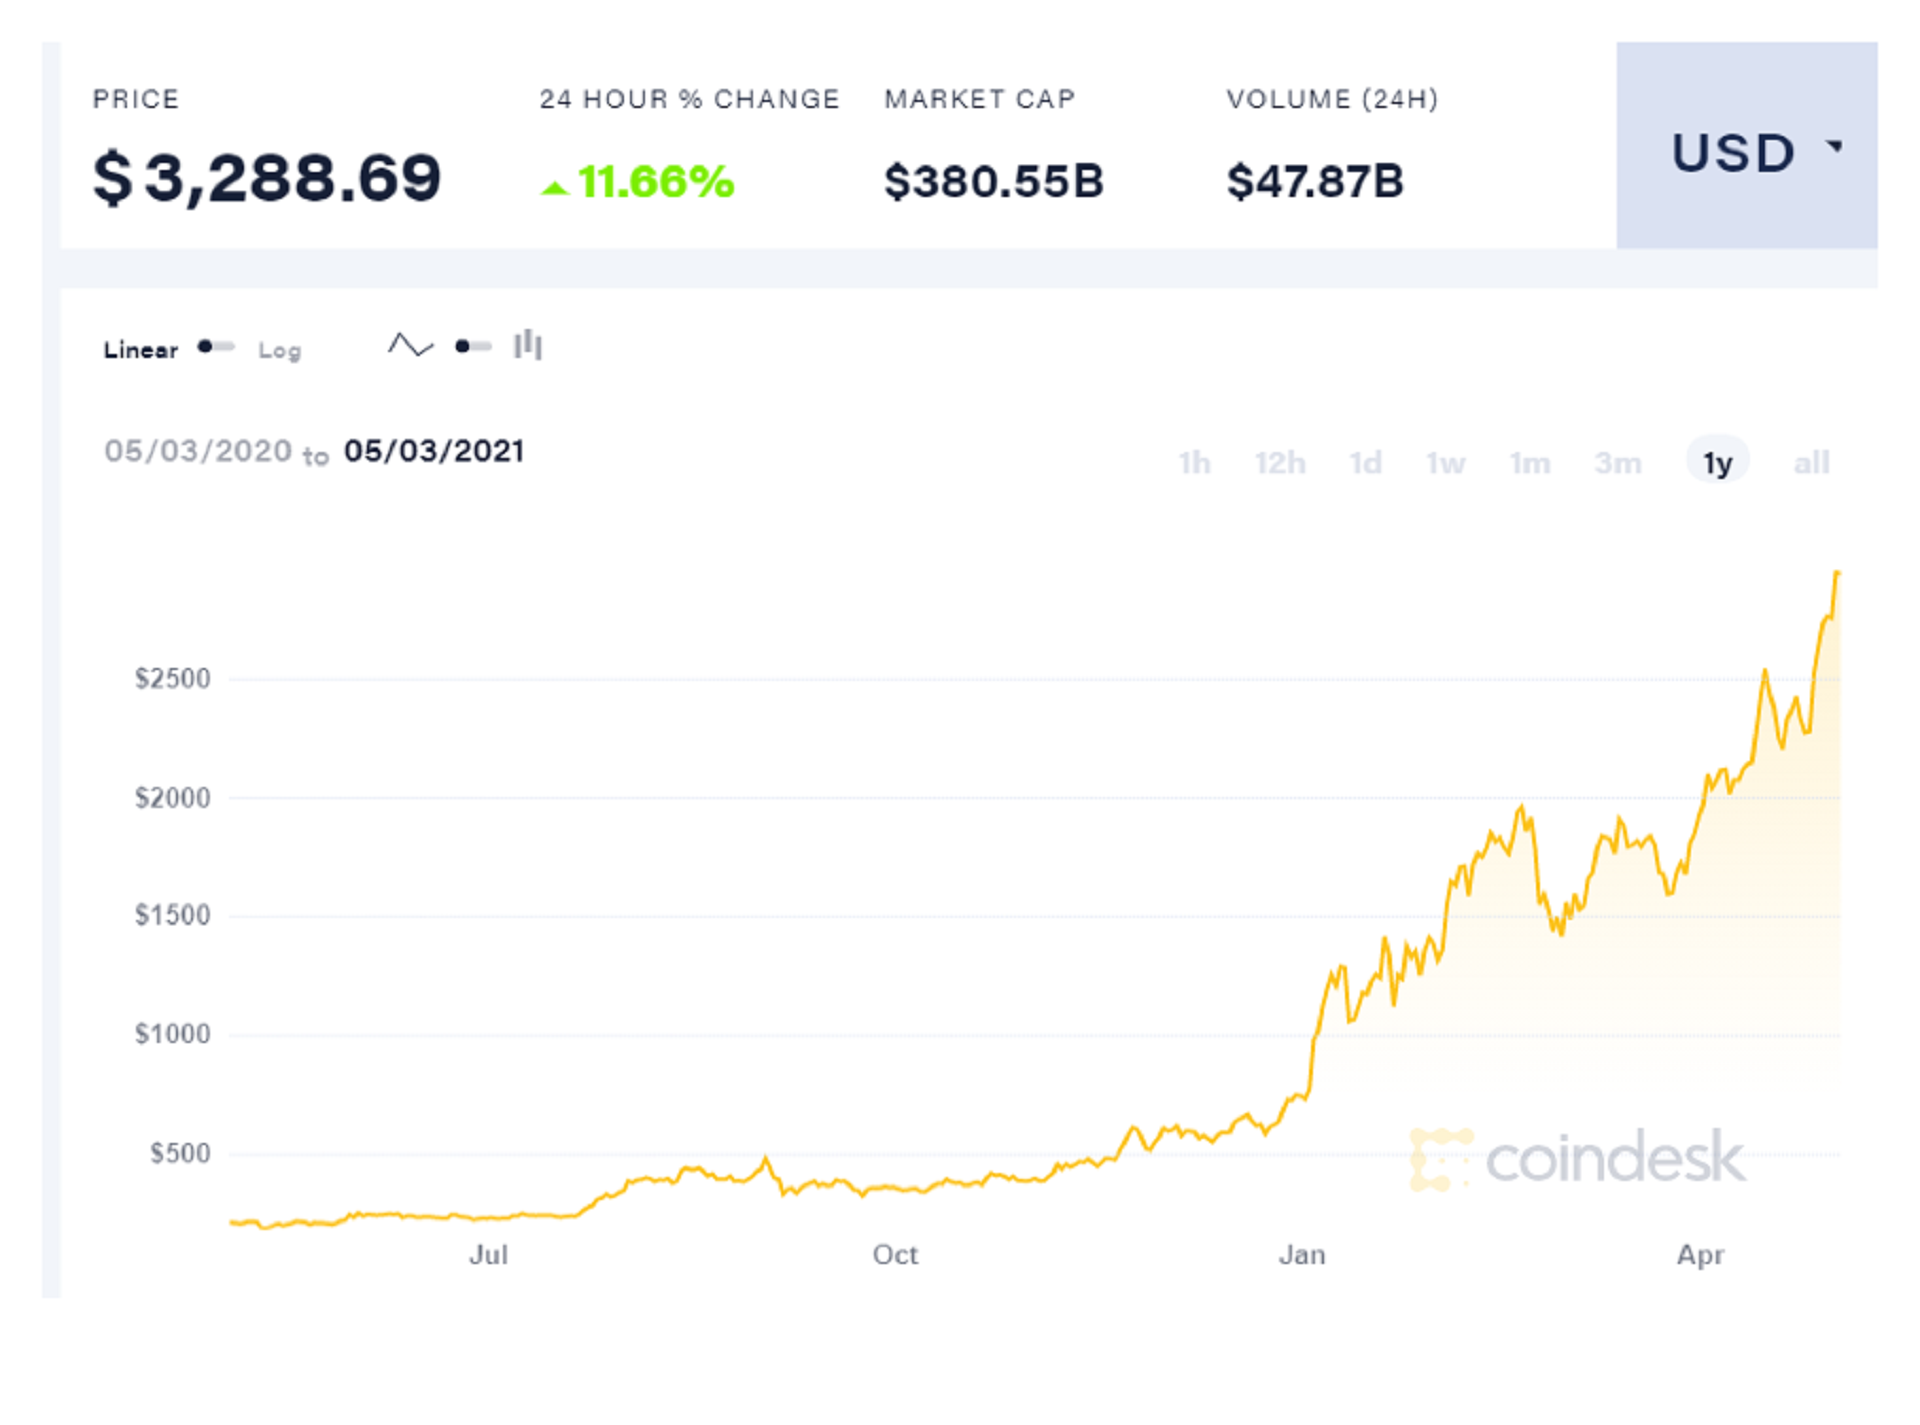 Ethereum is up over 1500% in the last year.